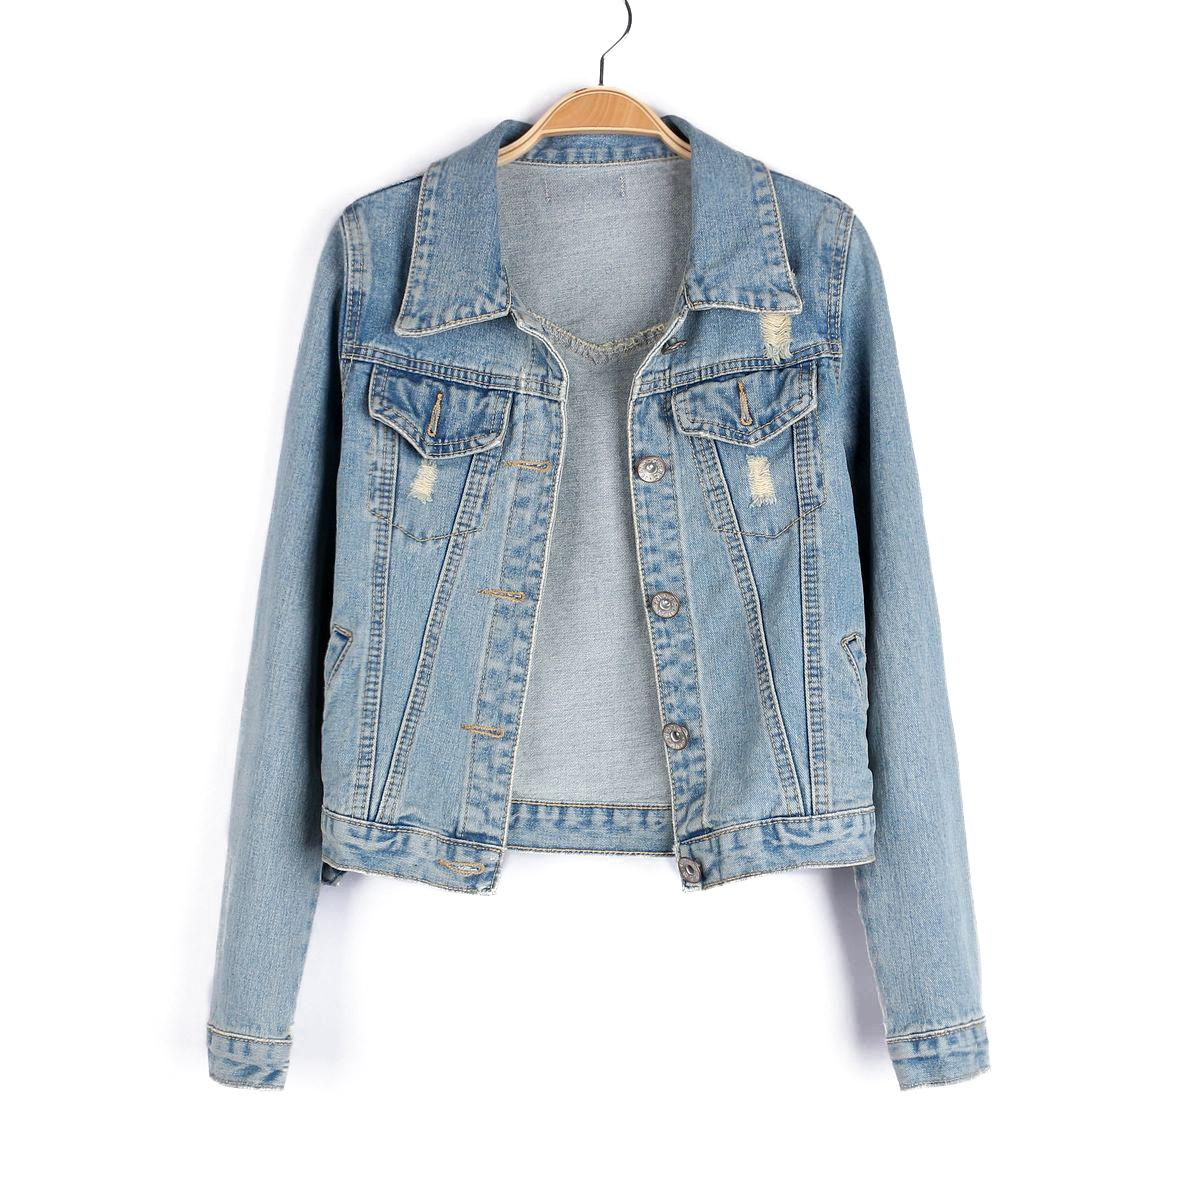 Best jean jackets for women online shopping-the world largest best